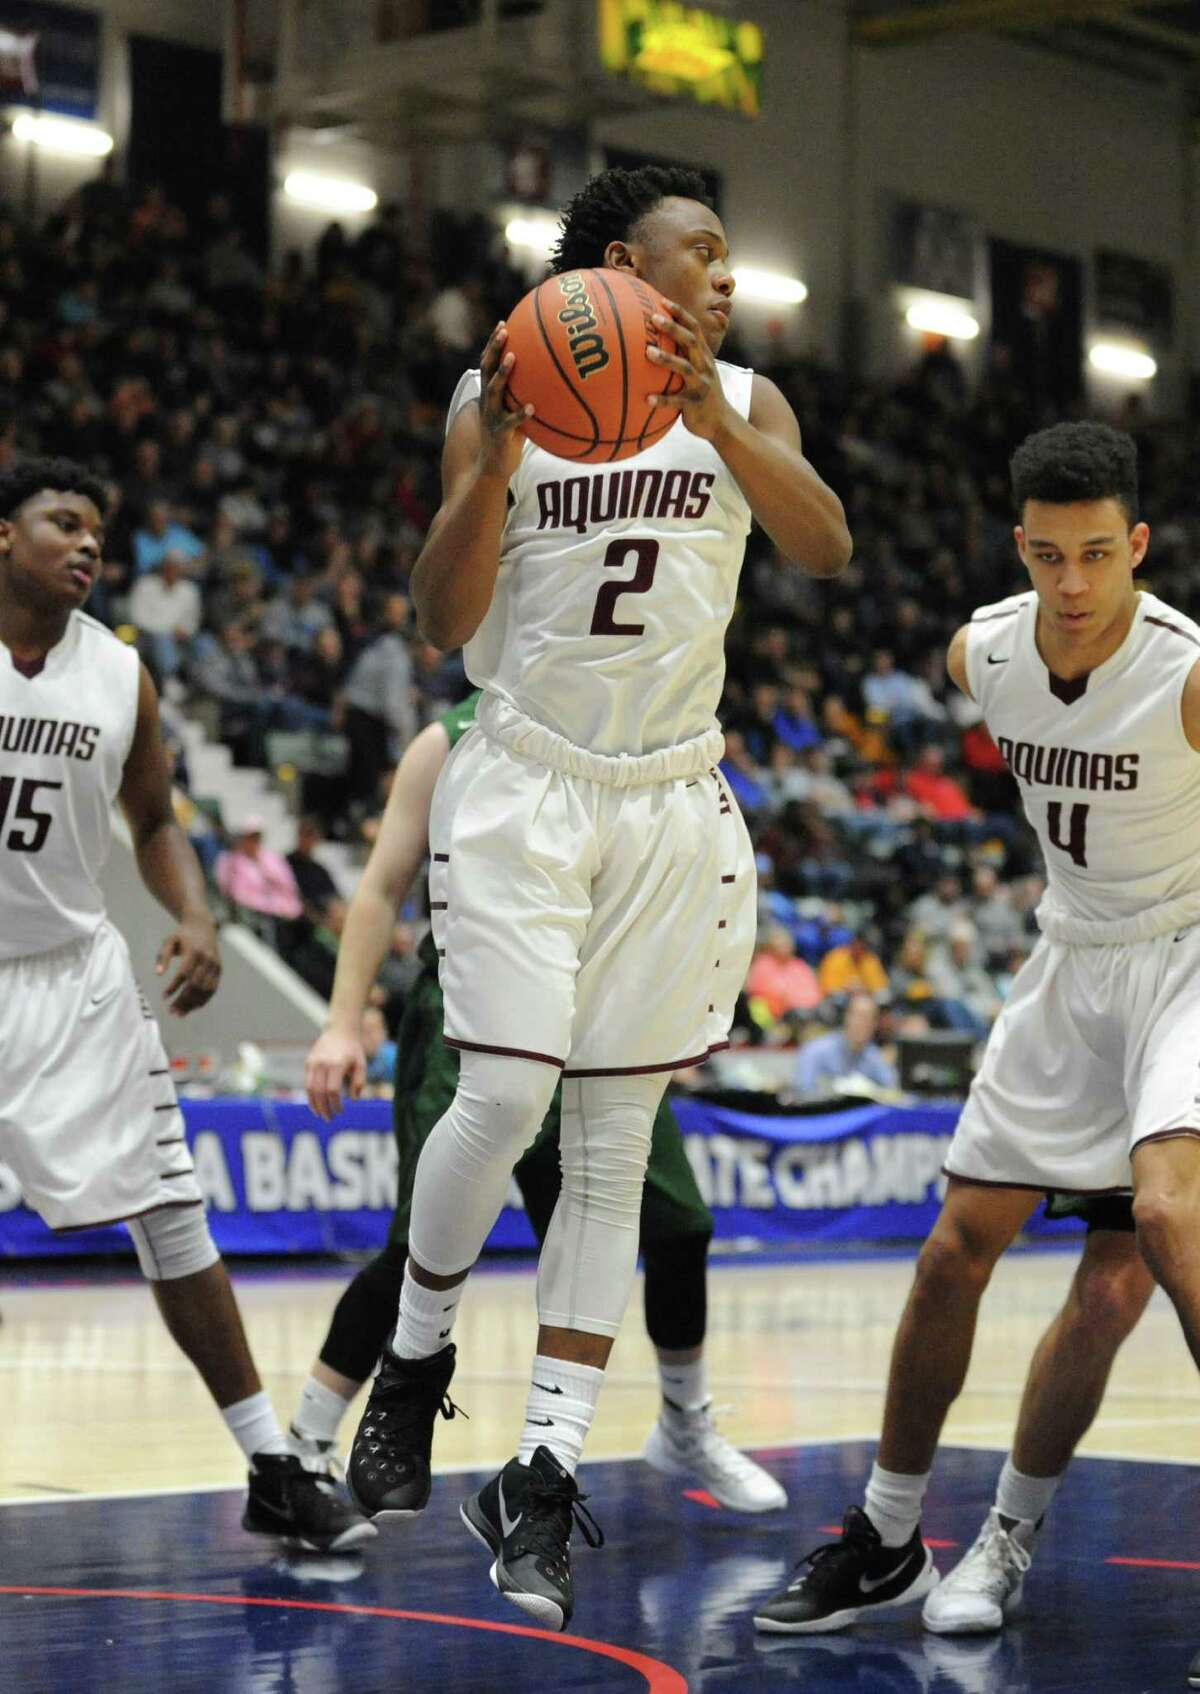 Aquinas's Earnest Edwards pulls down a rebound during their boys' high school basketball Class AA state semifinal against Shennendehowa at the Civic Center on Friday March 12, 2016 in Glens Falls, N.Y. (Michael P. Farrell/Times Union)